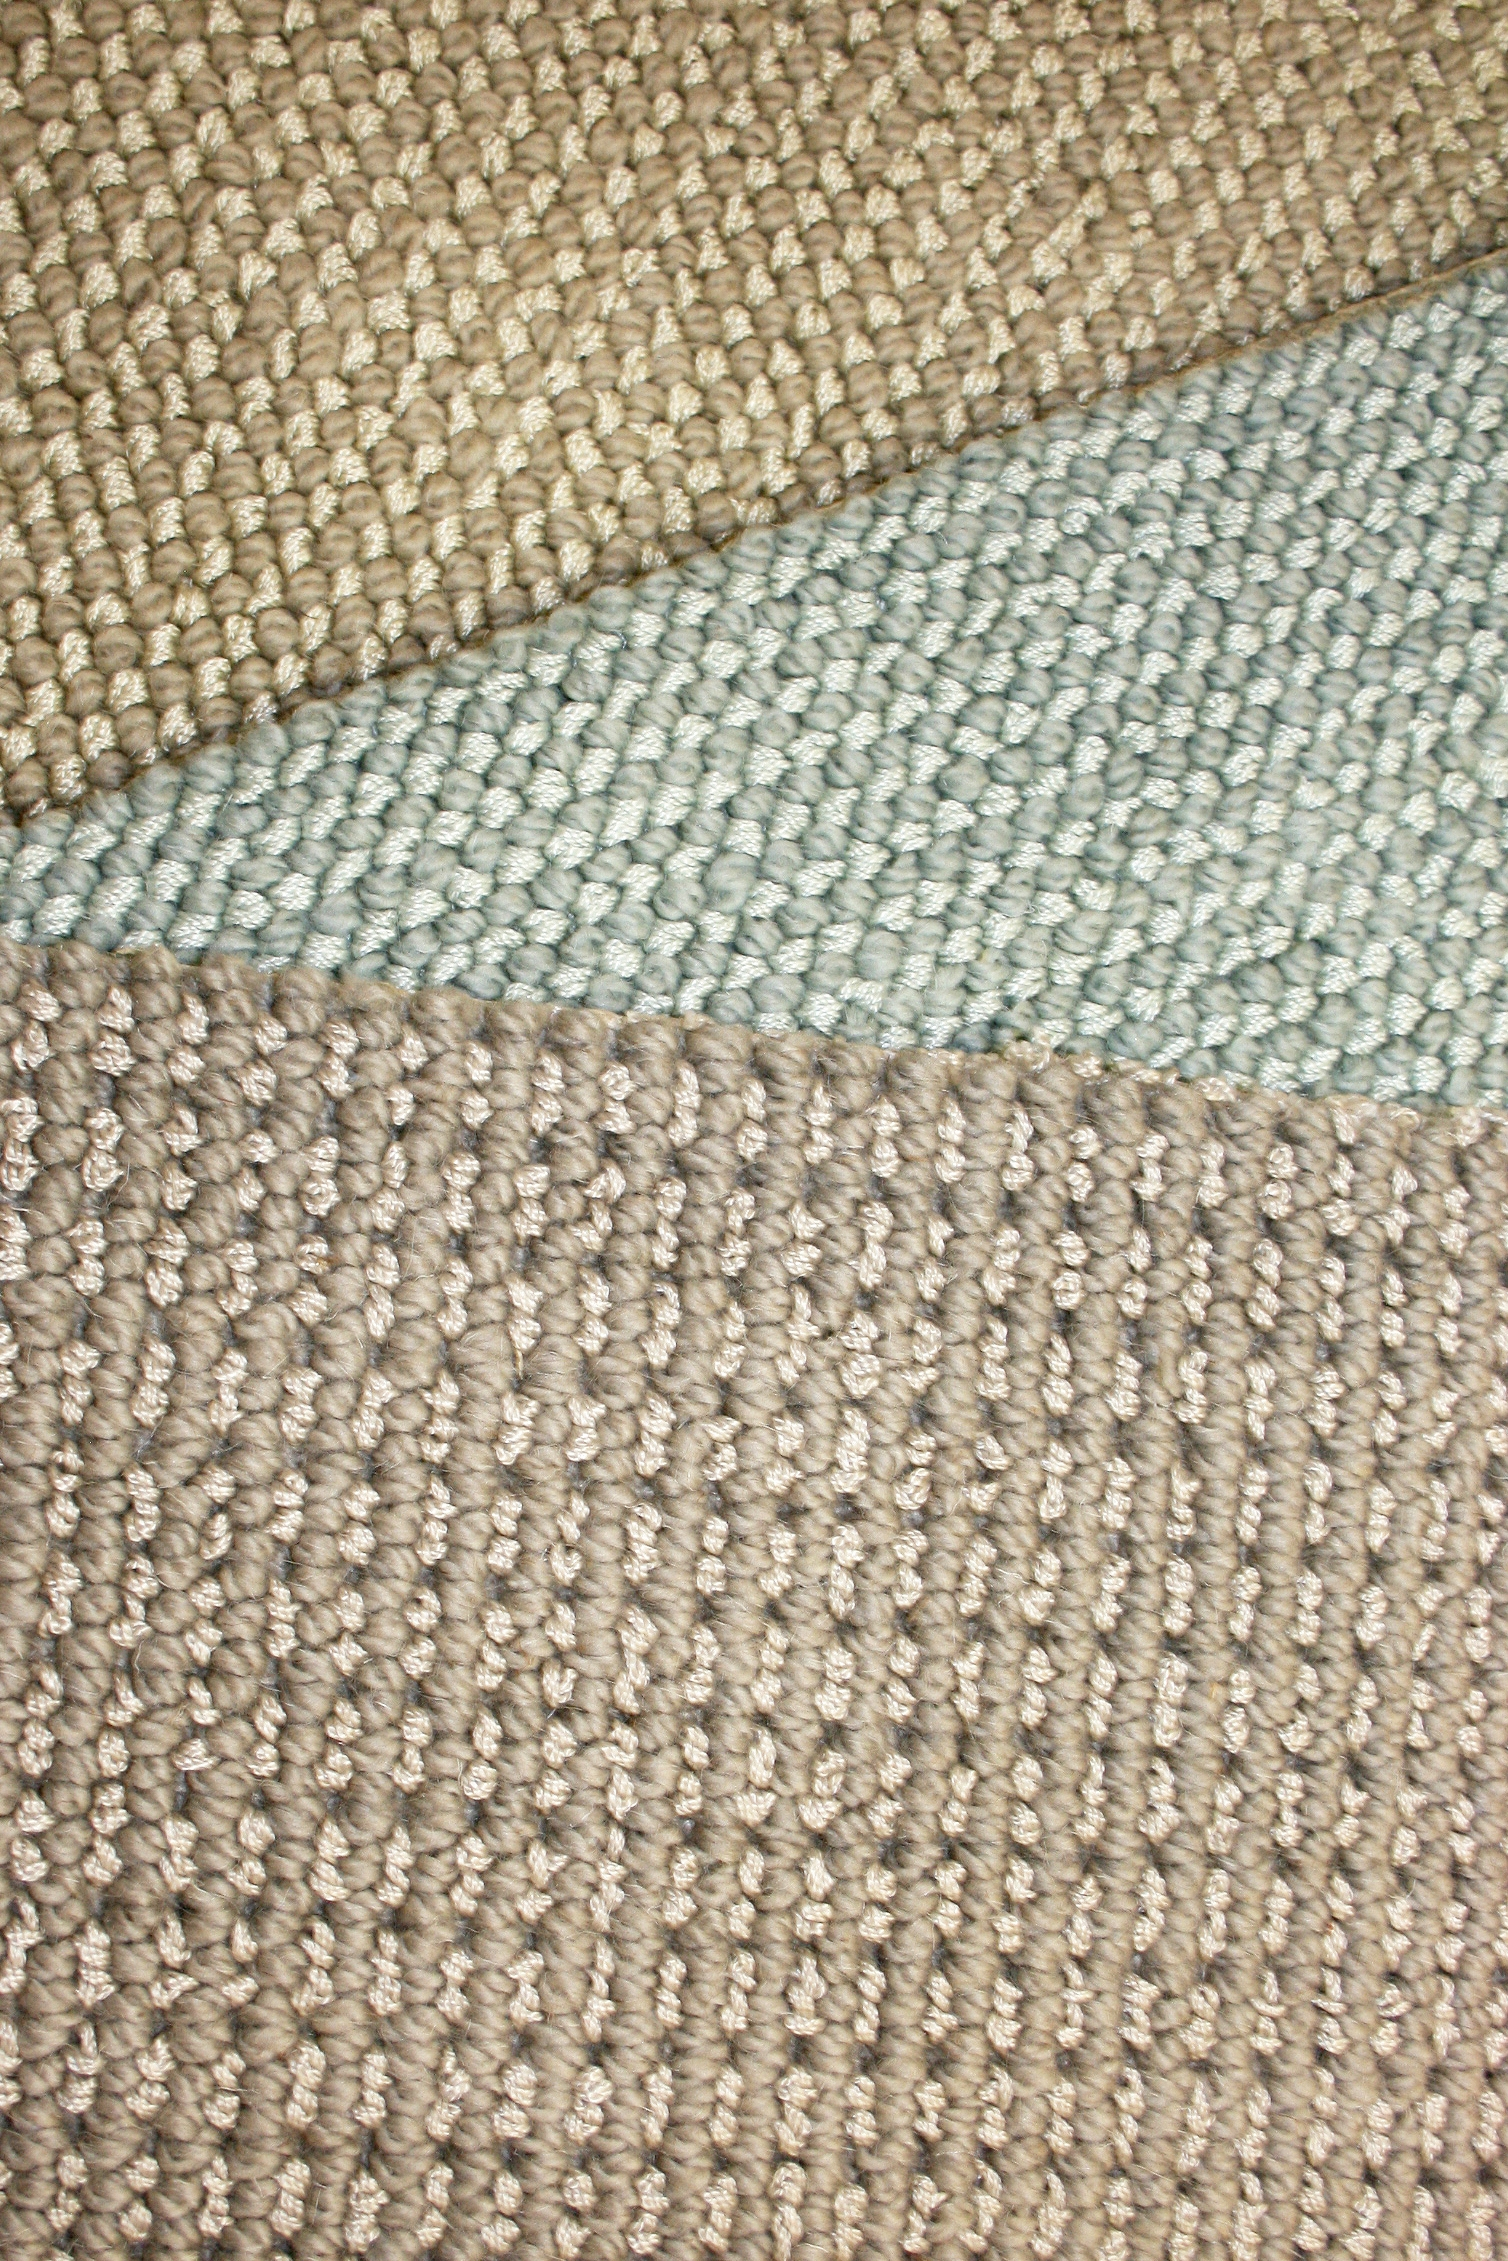 Wool carpet with shine accents